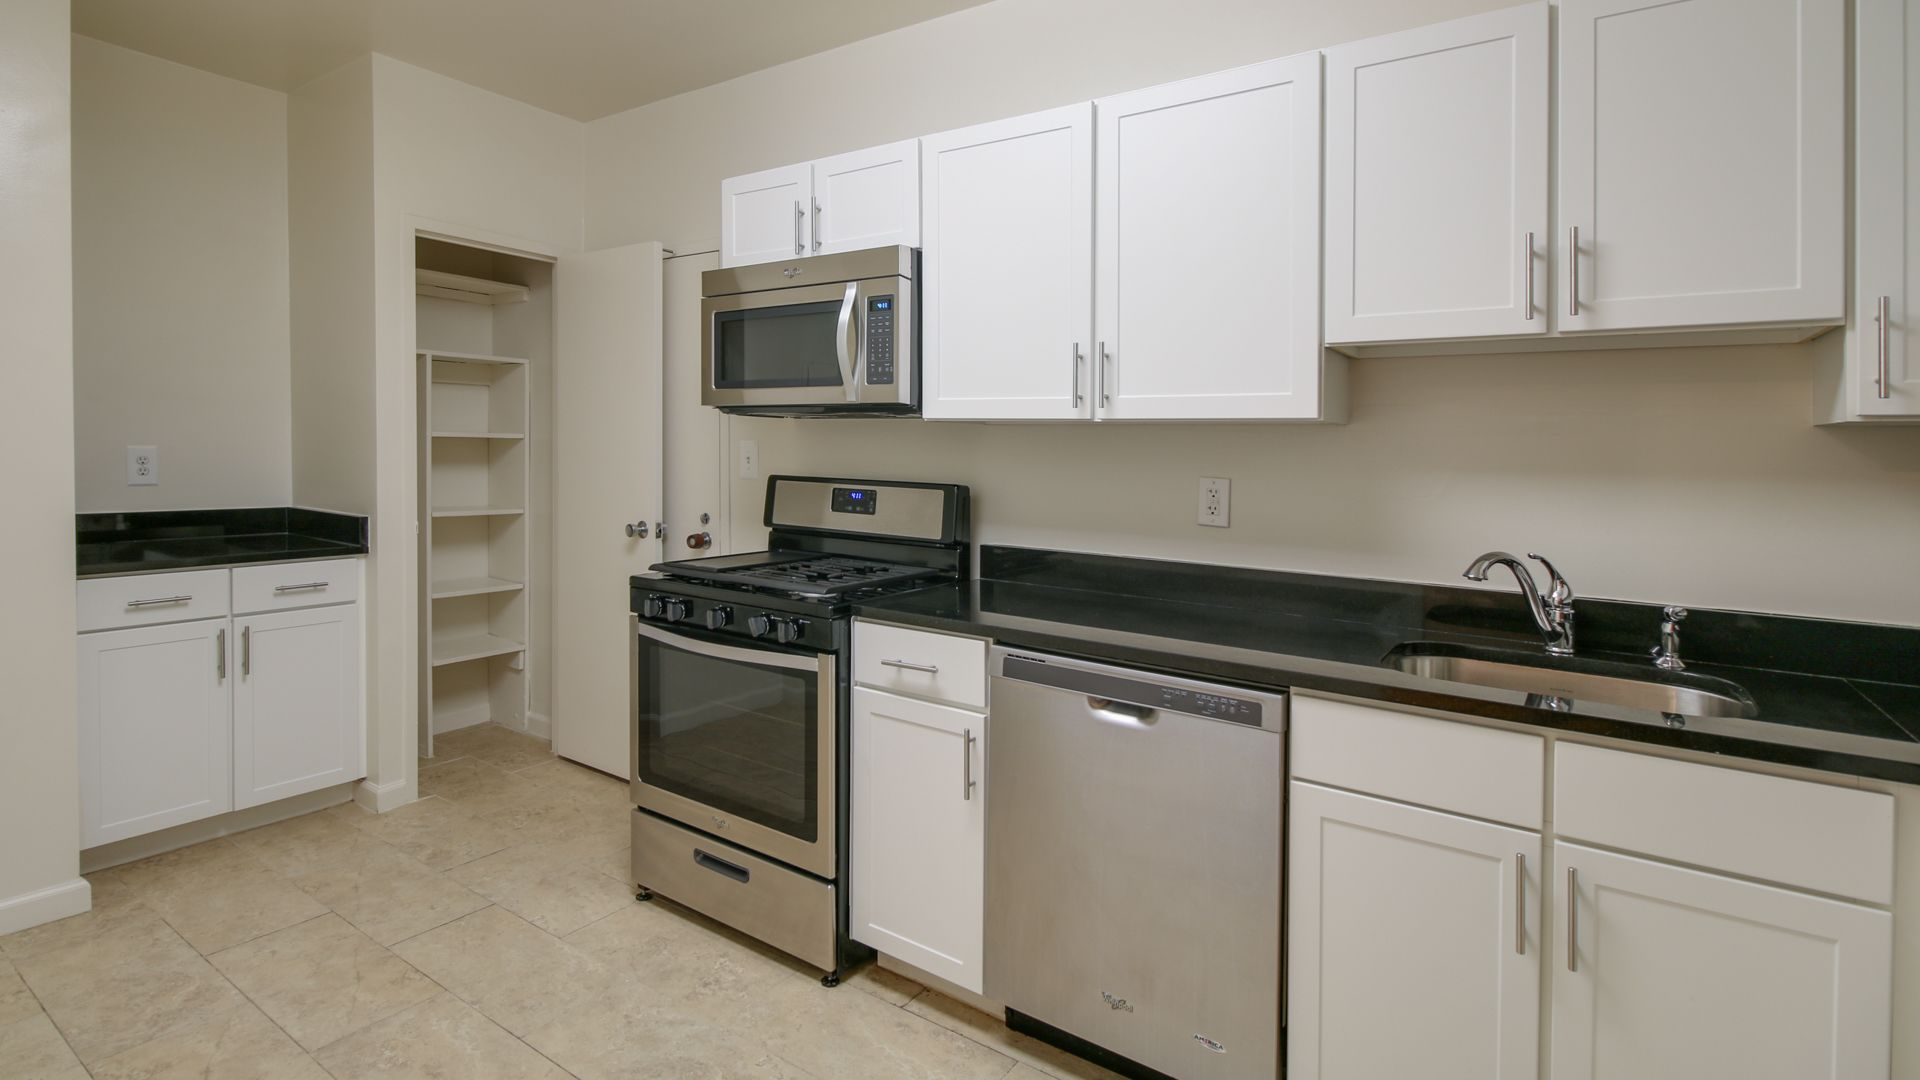 3 Bedroom Apartments Near Me  willard apartments chevy chase willard ave